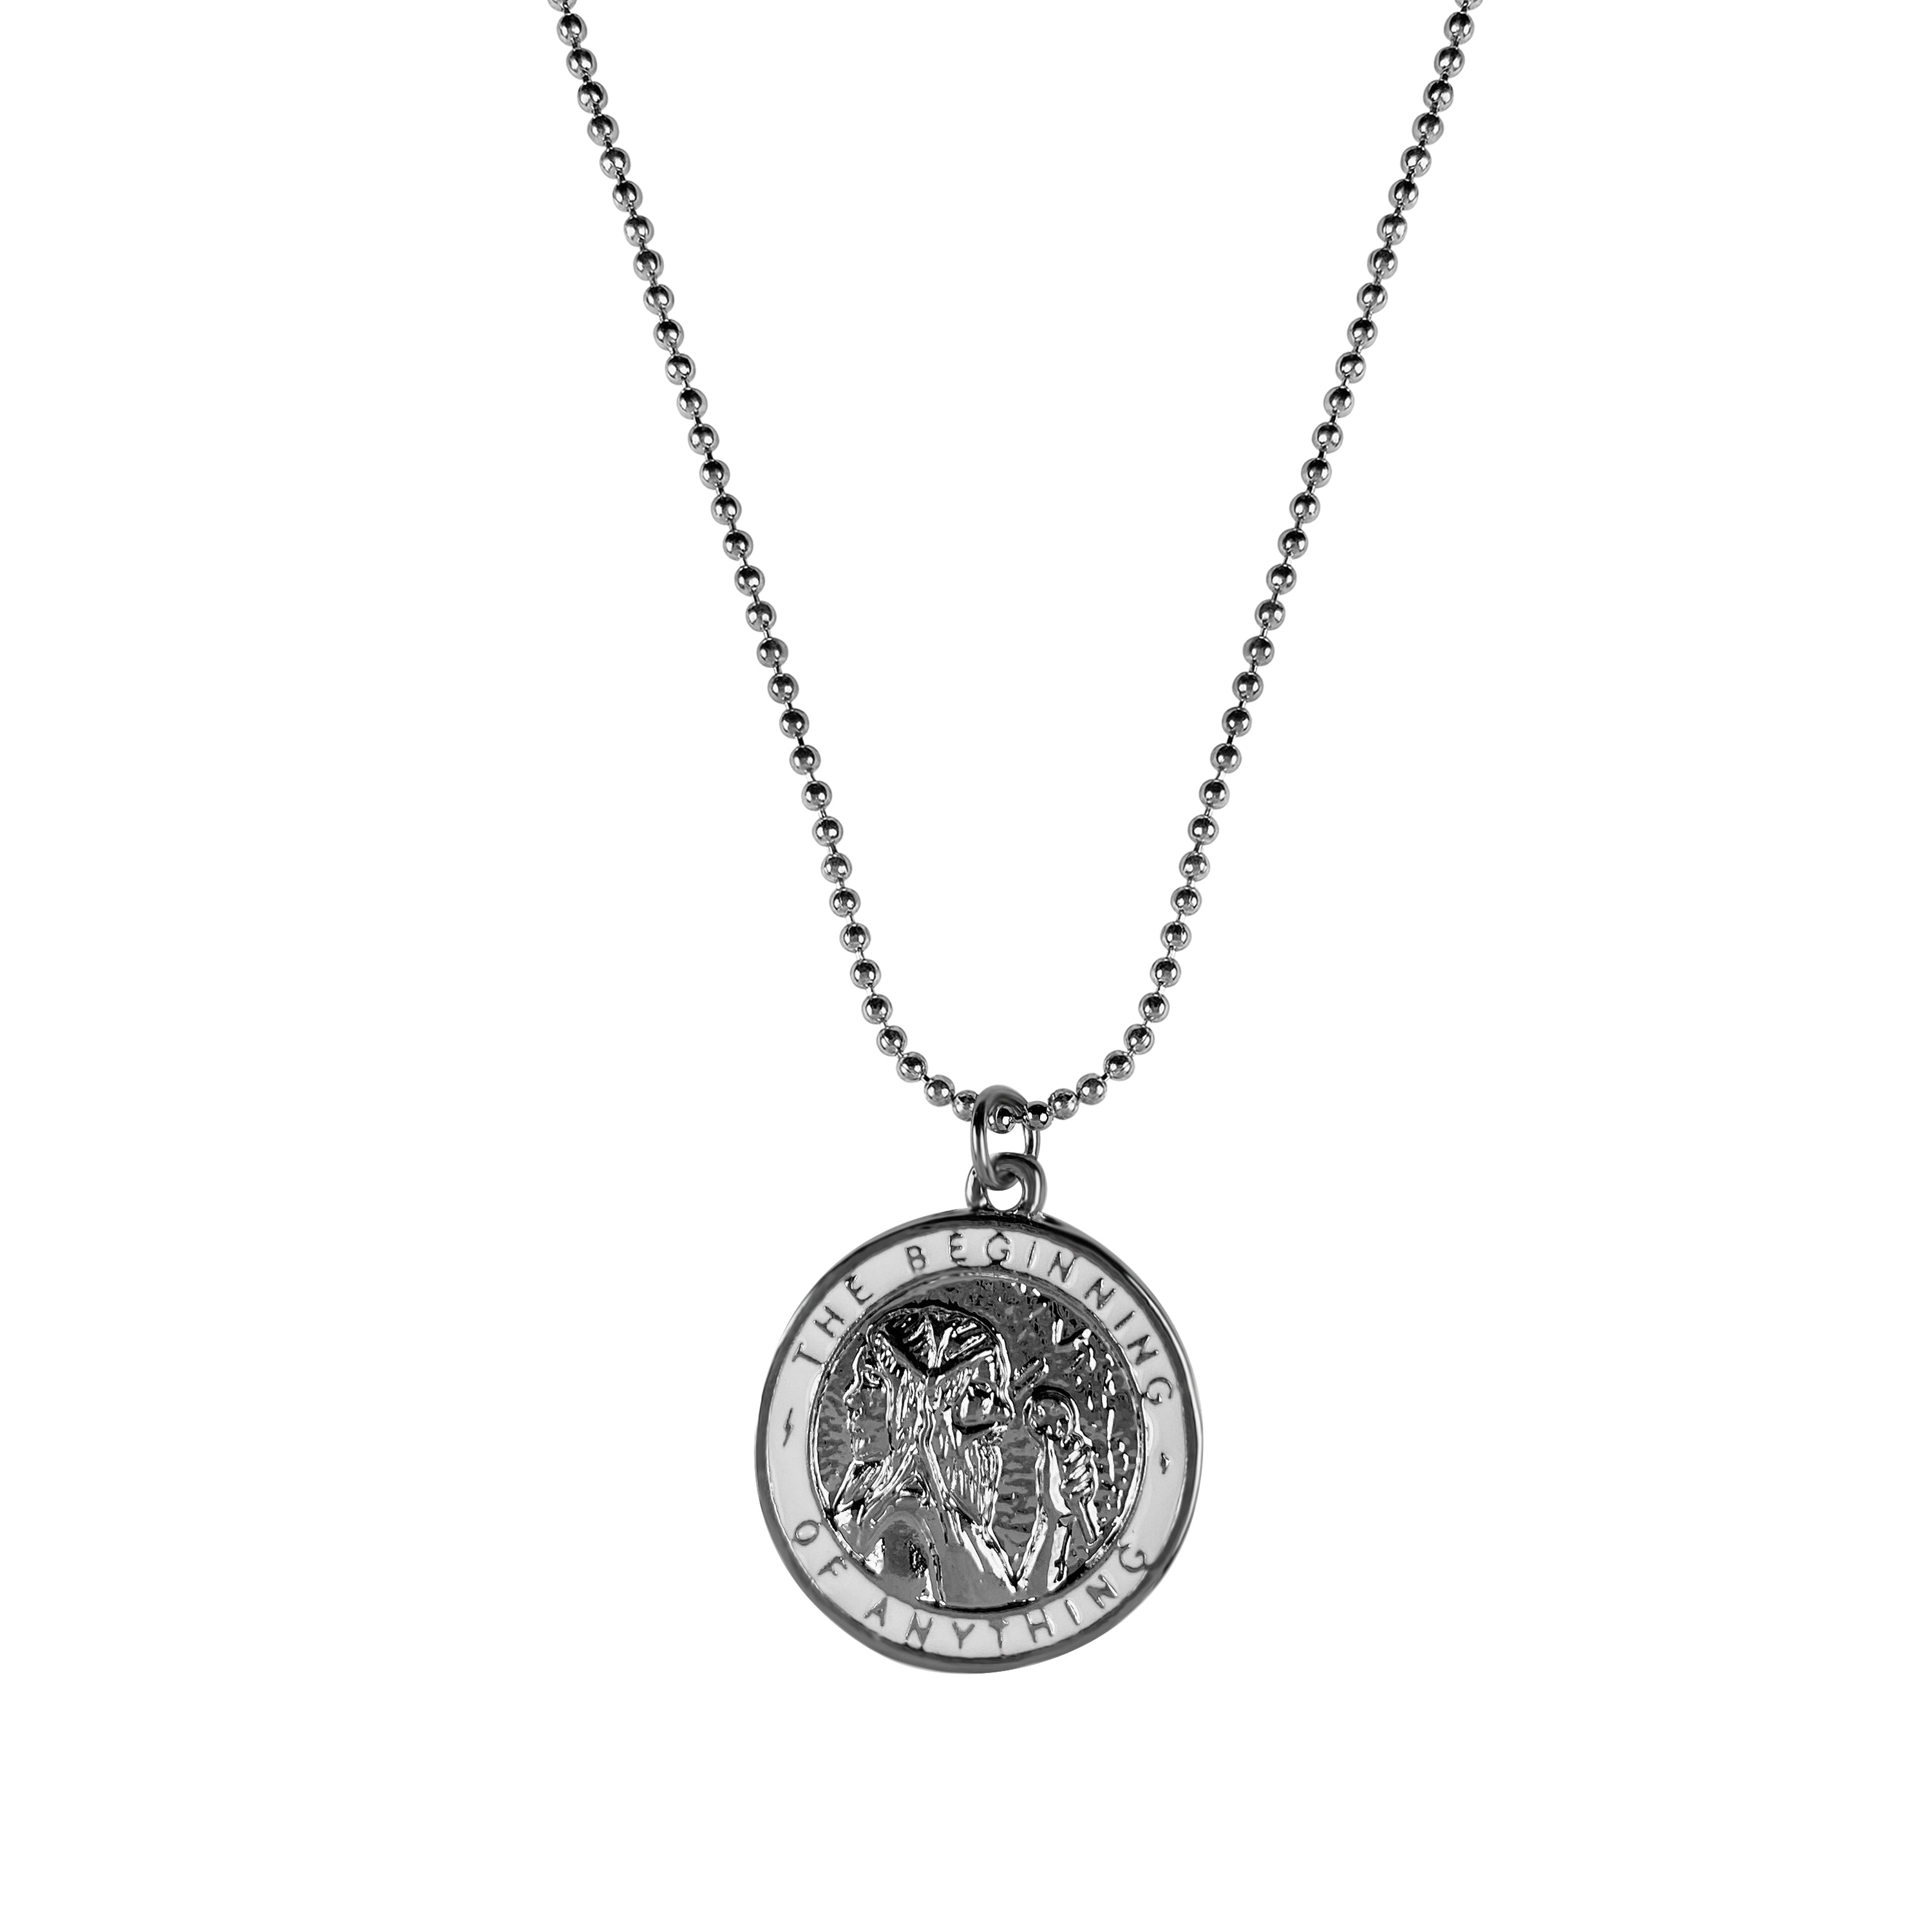 The Janus Pendant